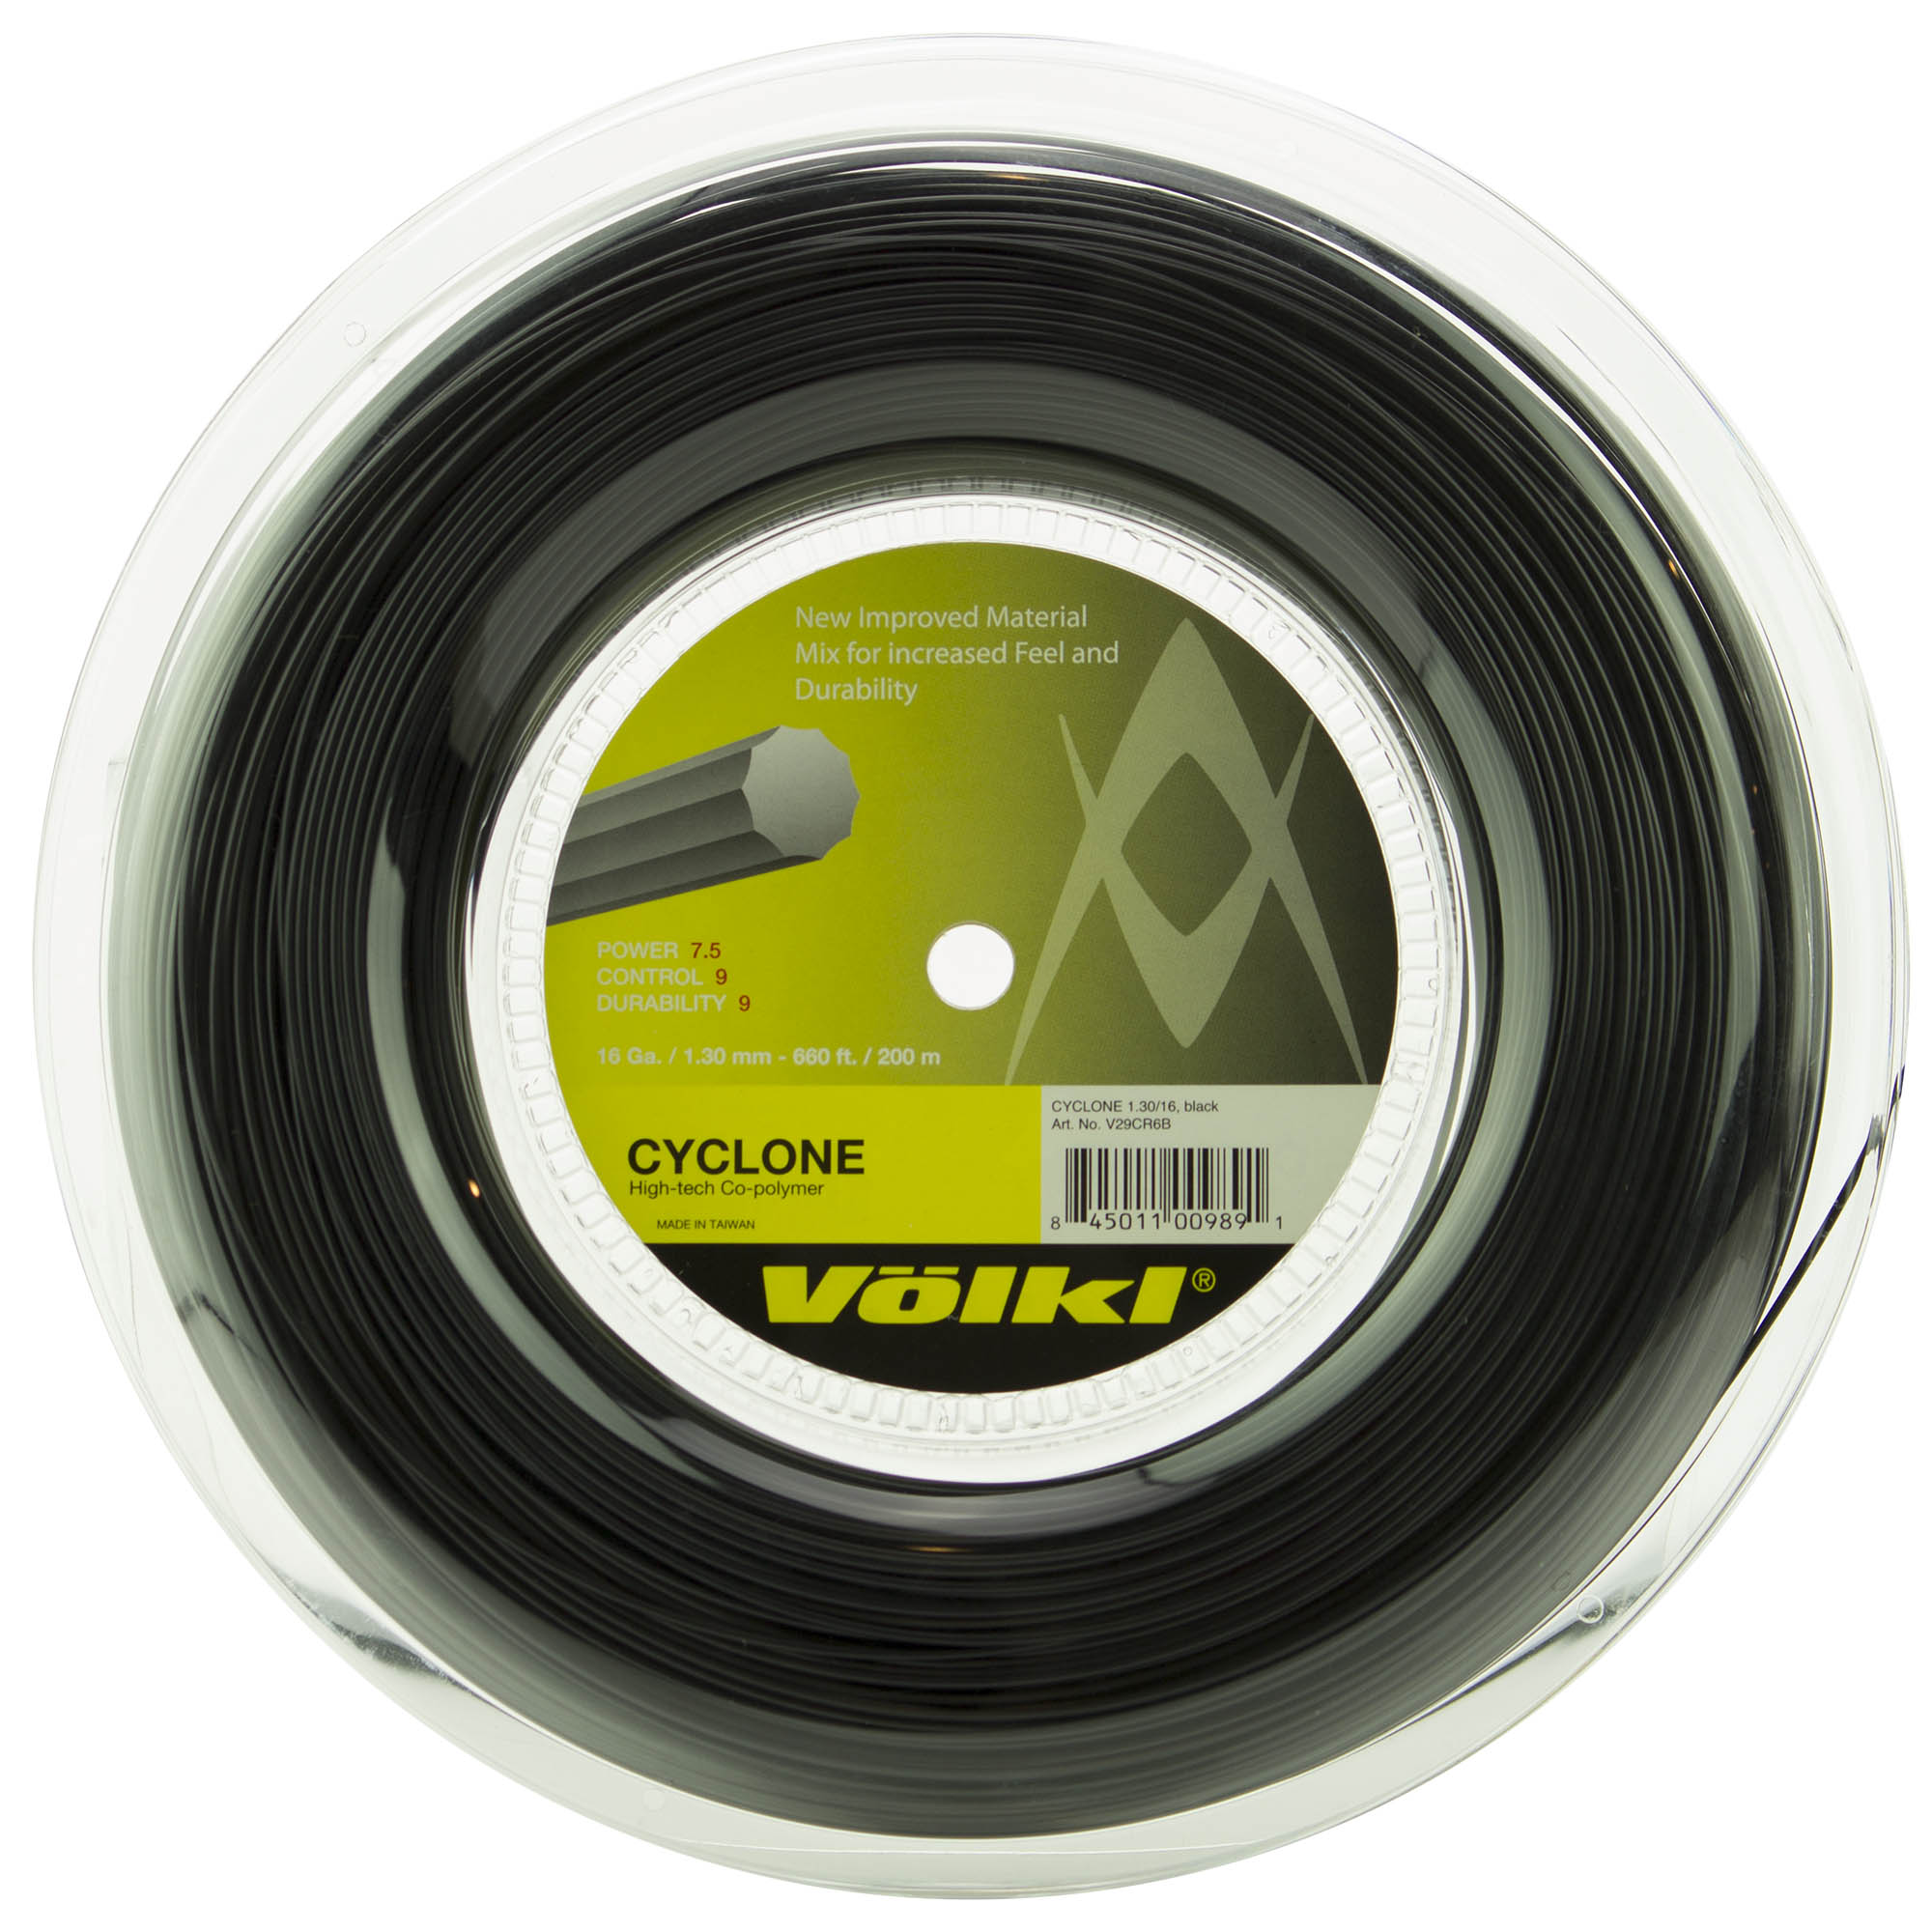 Volkl Cyclone Tennis String - 200m Reel - Black, 1.30mm